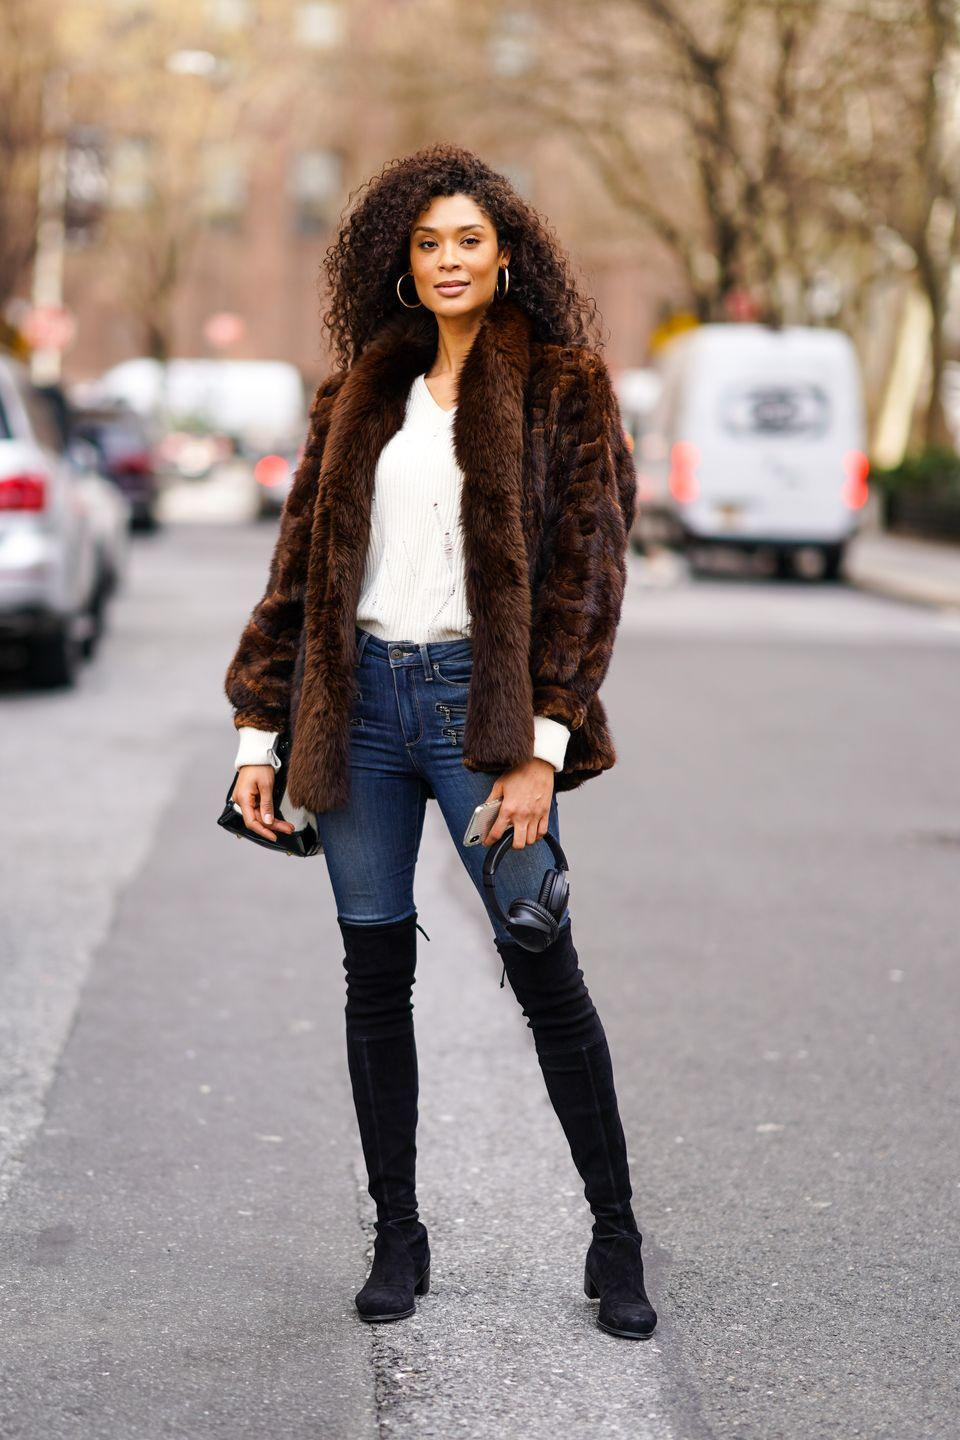 <p>Don't overthink it! Sometimes a good ol' pair of jeans and a faux-fur jacket over a sweater is just the thing; plus, it's dressy and low-key at the same time. </p>